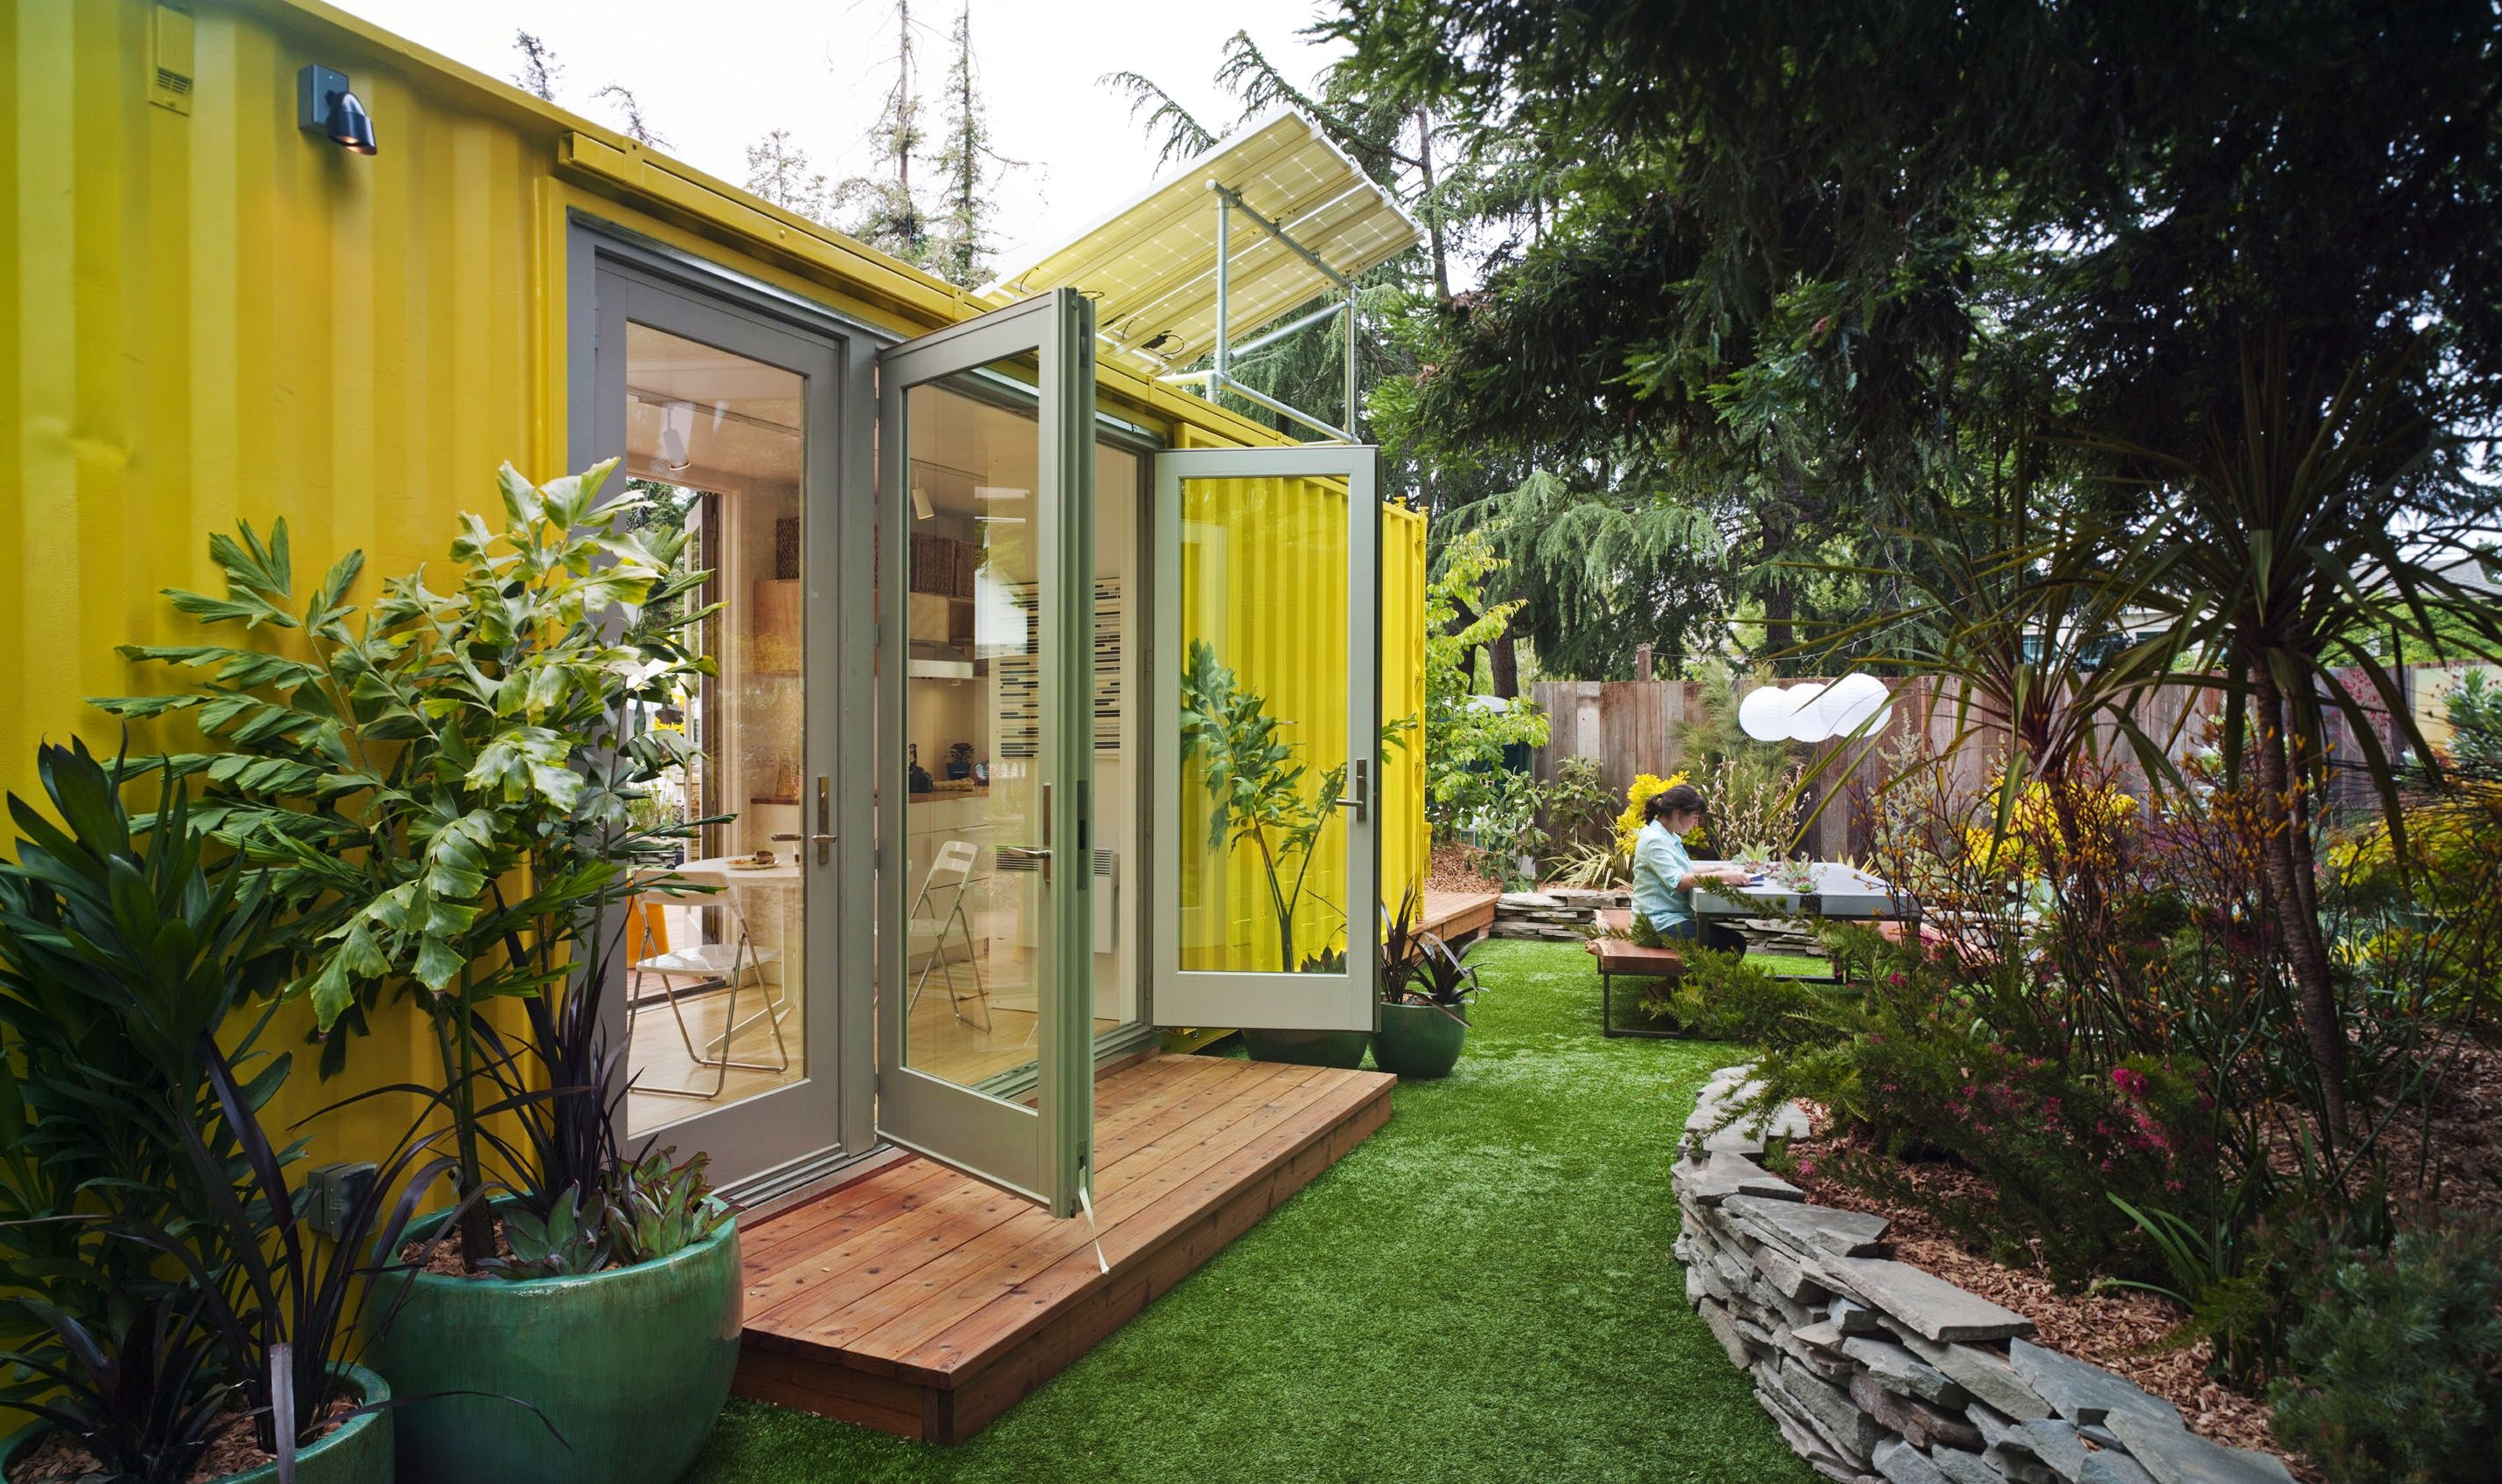 Cargo container homes on pinterest container houses - The Tiny Tiny Cabin Home Sweet Shipping Container Westphoria